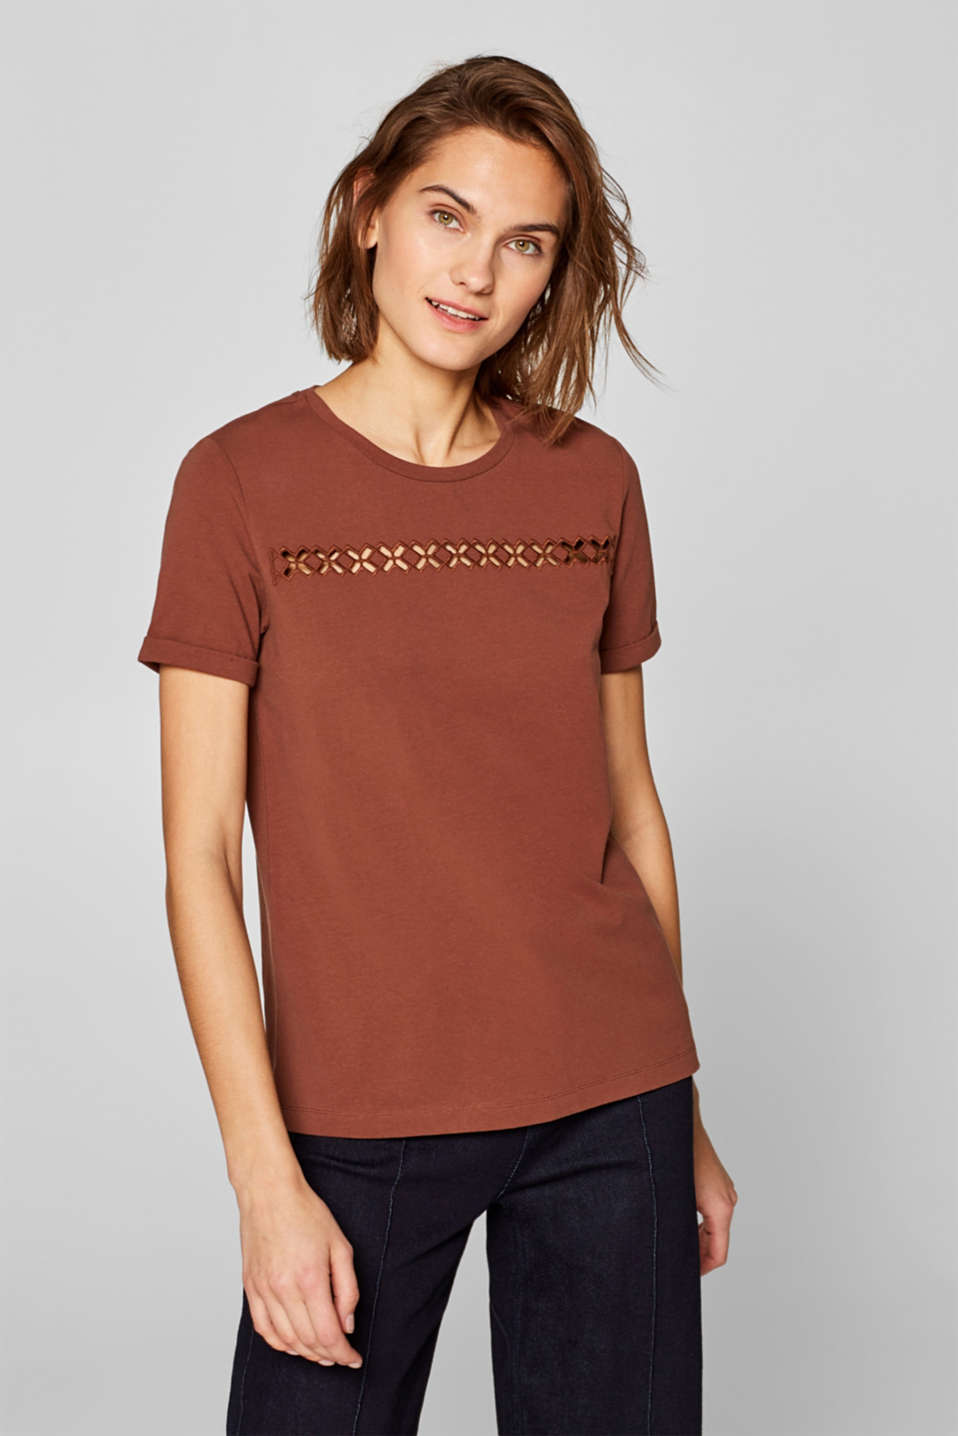 Esprit - Stretch top with a cross-shaped open-work pattern